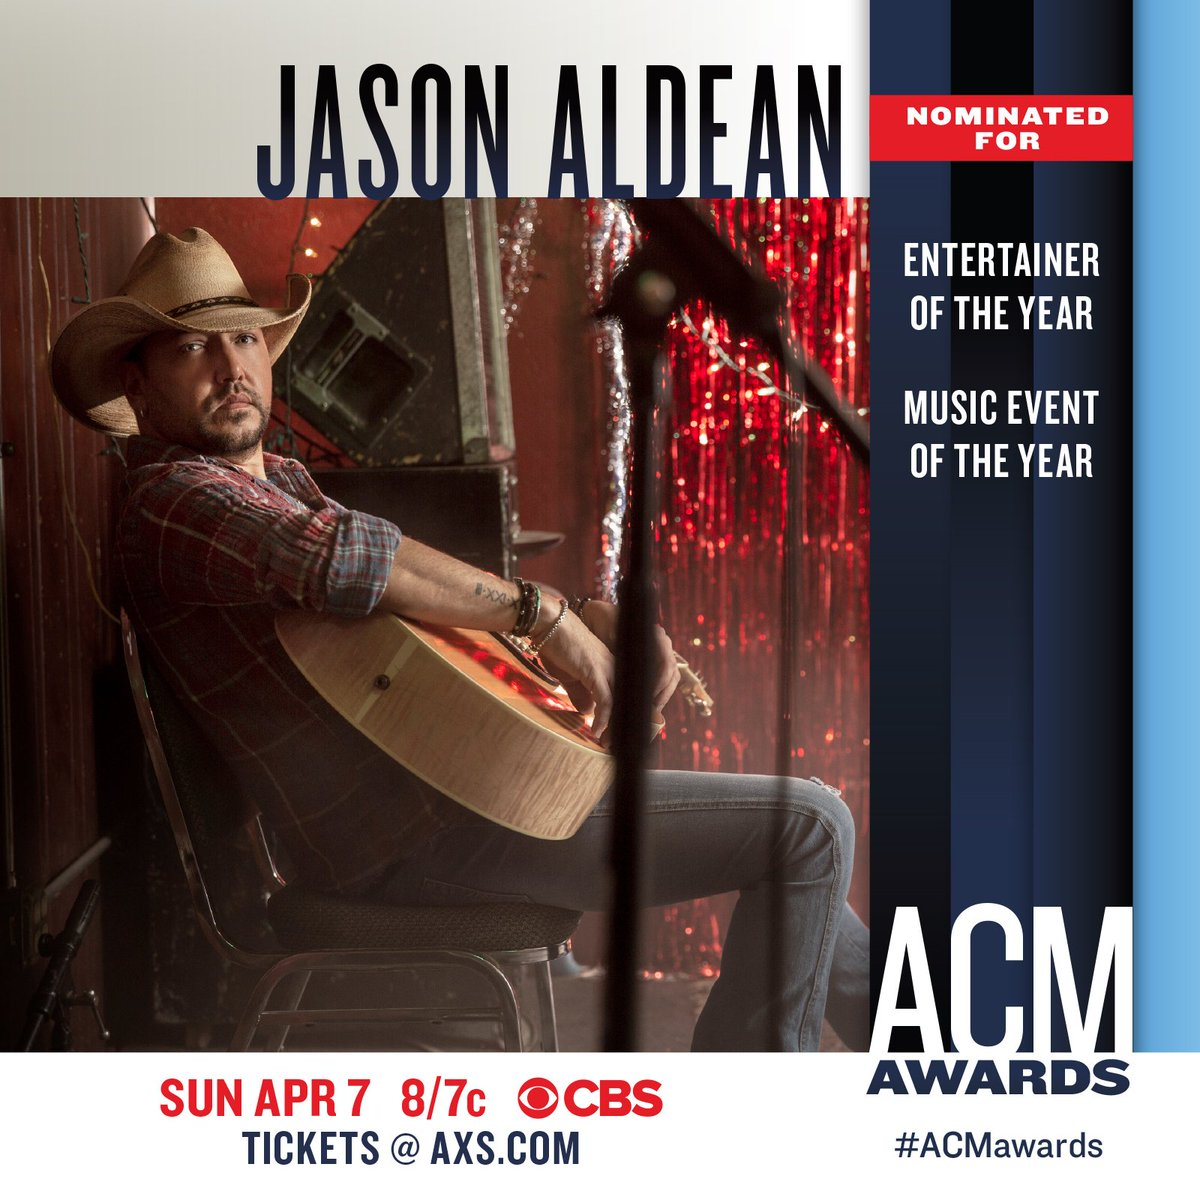 Jason is nominated for Entertainer of the Year & Music Event of the Year at the 2019 @ACMawards! Tune in to see who wins April 7th on CBS.  #ACMawards